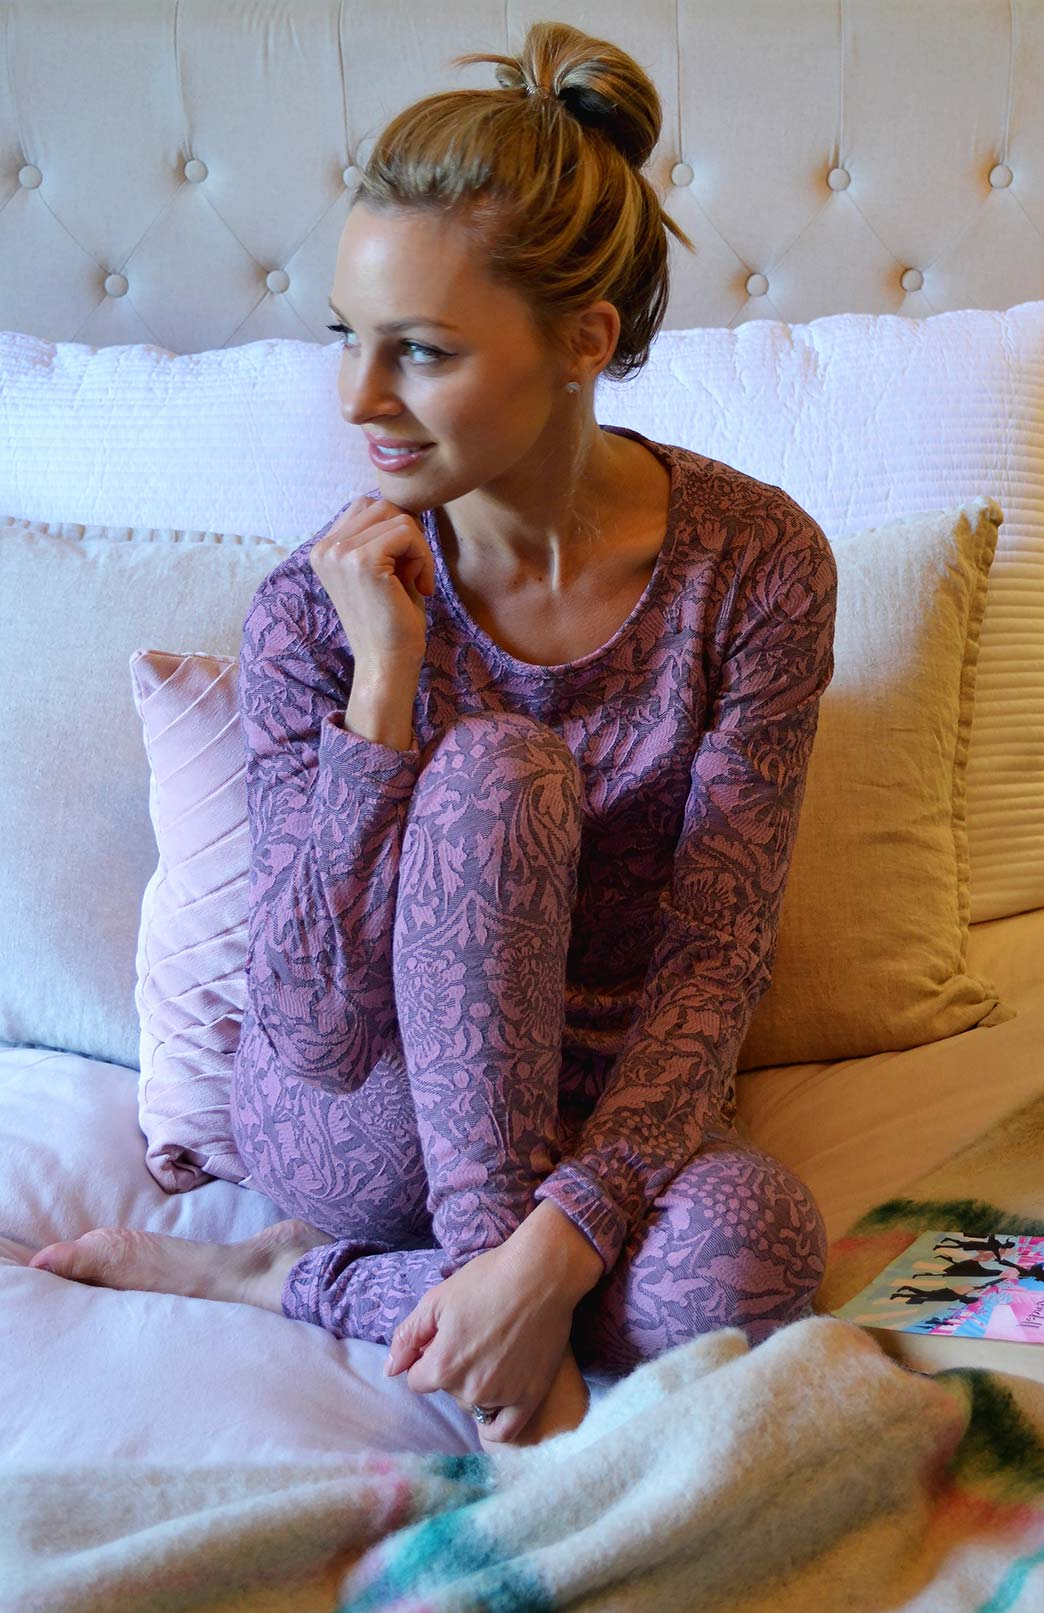 Pyjama Set - Women's Pink Abbey Floral Patterned Wool Matching Pyjama Set of Long Sleeved Top and Tights - Smitten Merino Tasmania Australia